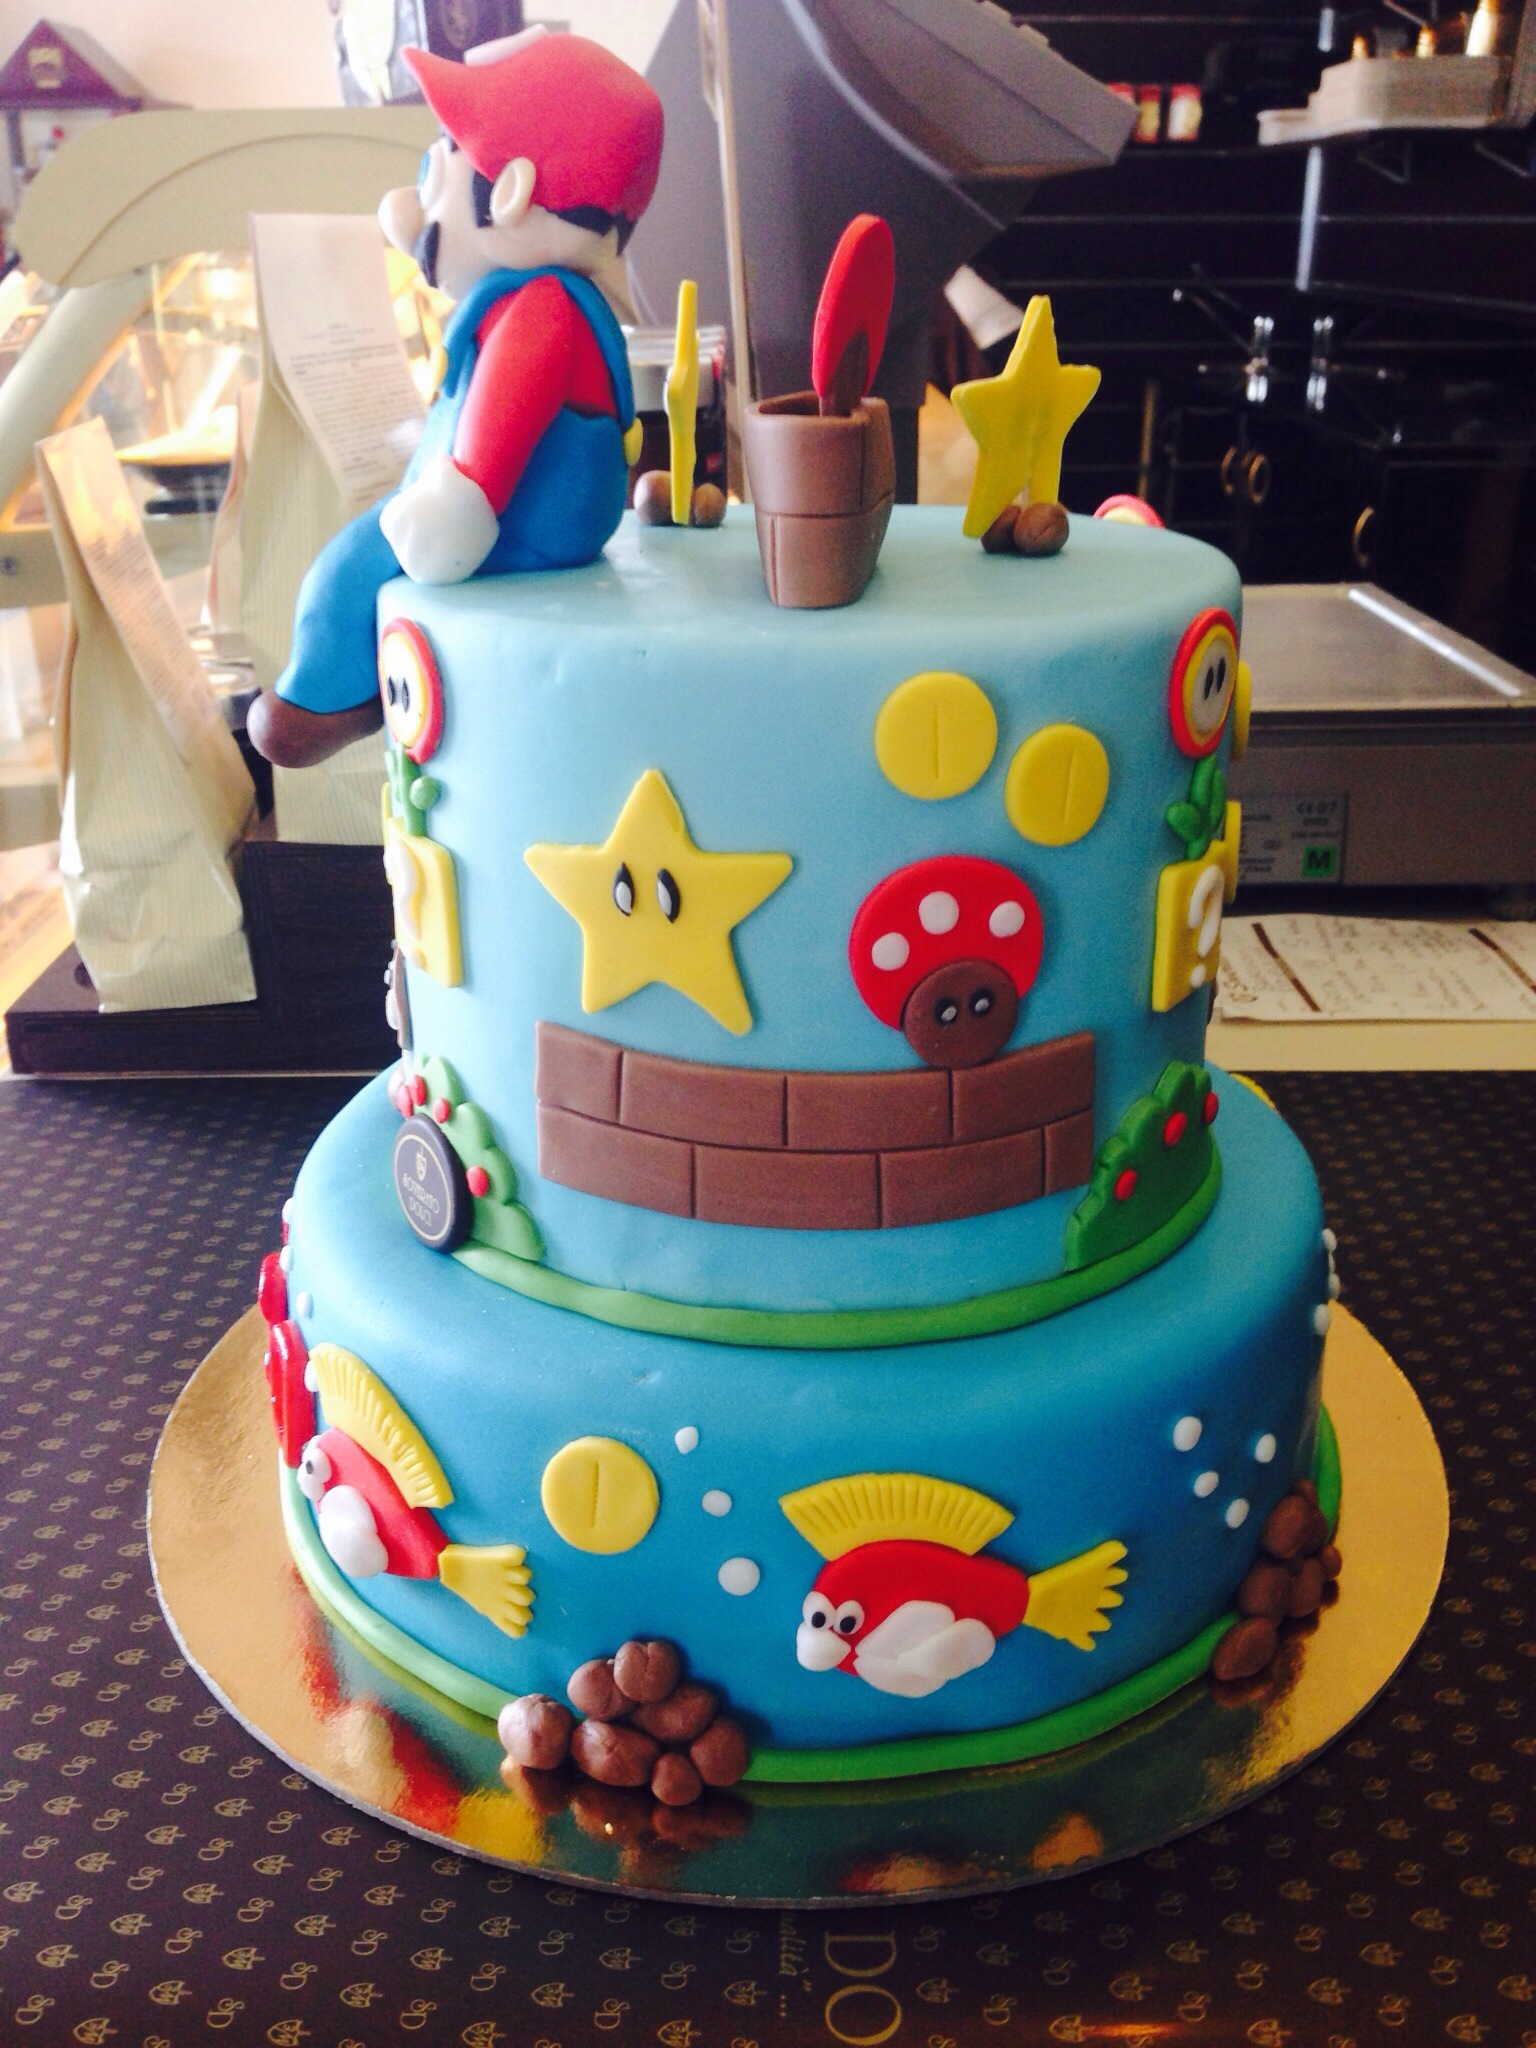 torta super mario bros guida per torte e dolci. Black Bedroom Furniture Sets. Home Design Ideas